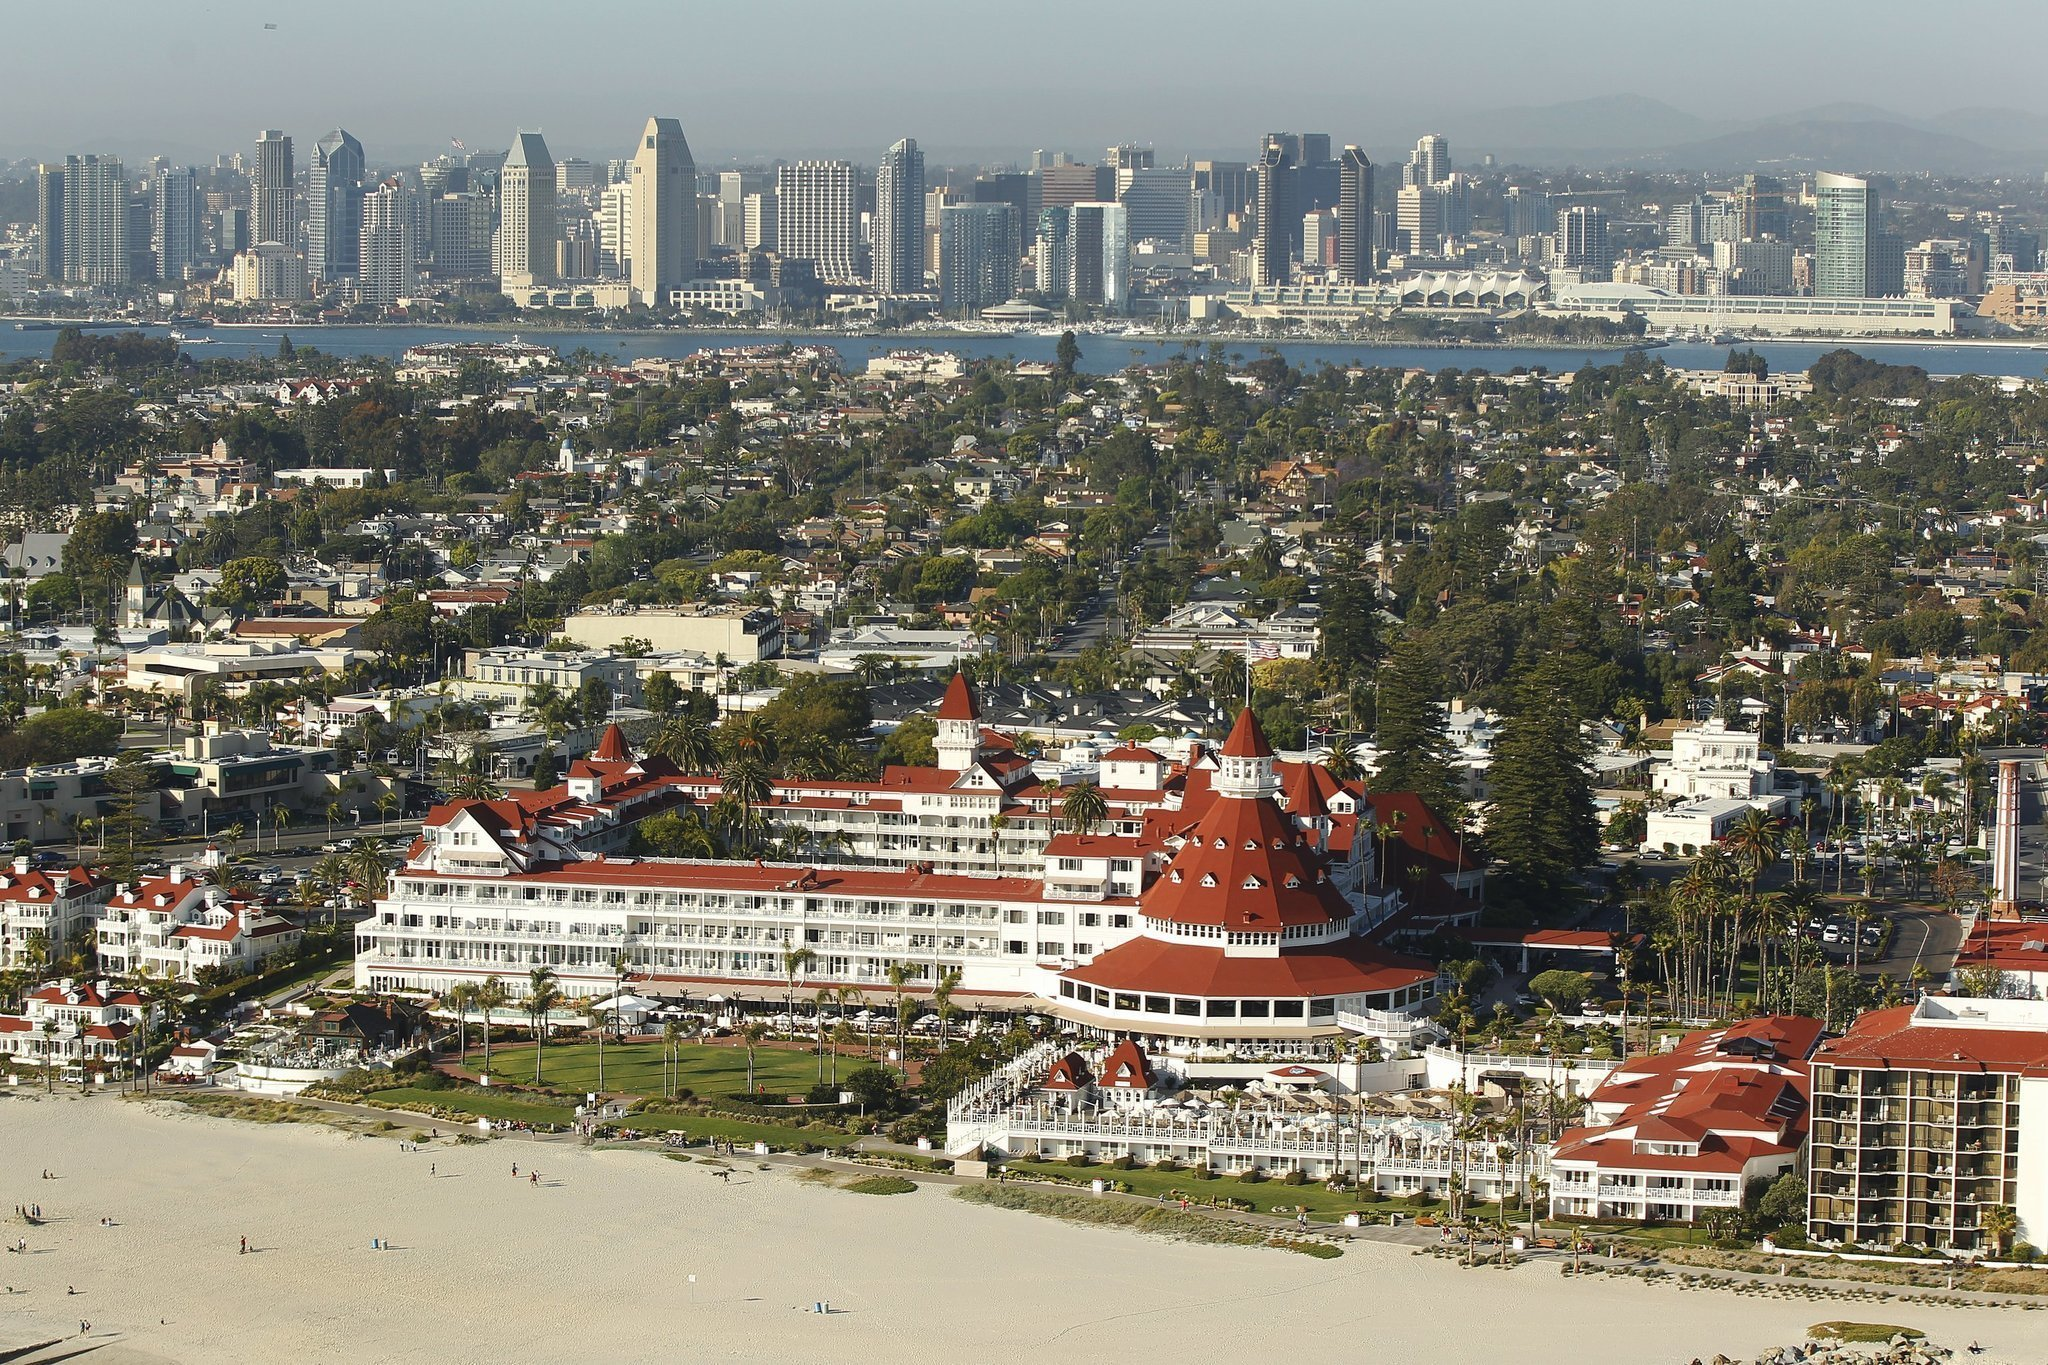 Strategic An Owner Of The Hotel Del Coronado Will Acquire 100 Percent Ownership From Blackstone Group San Go Union Tribune